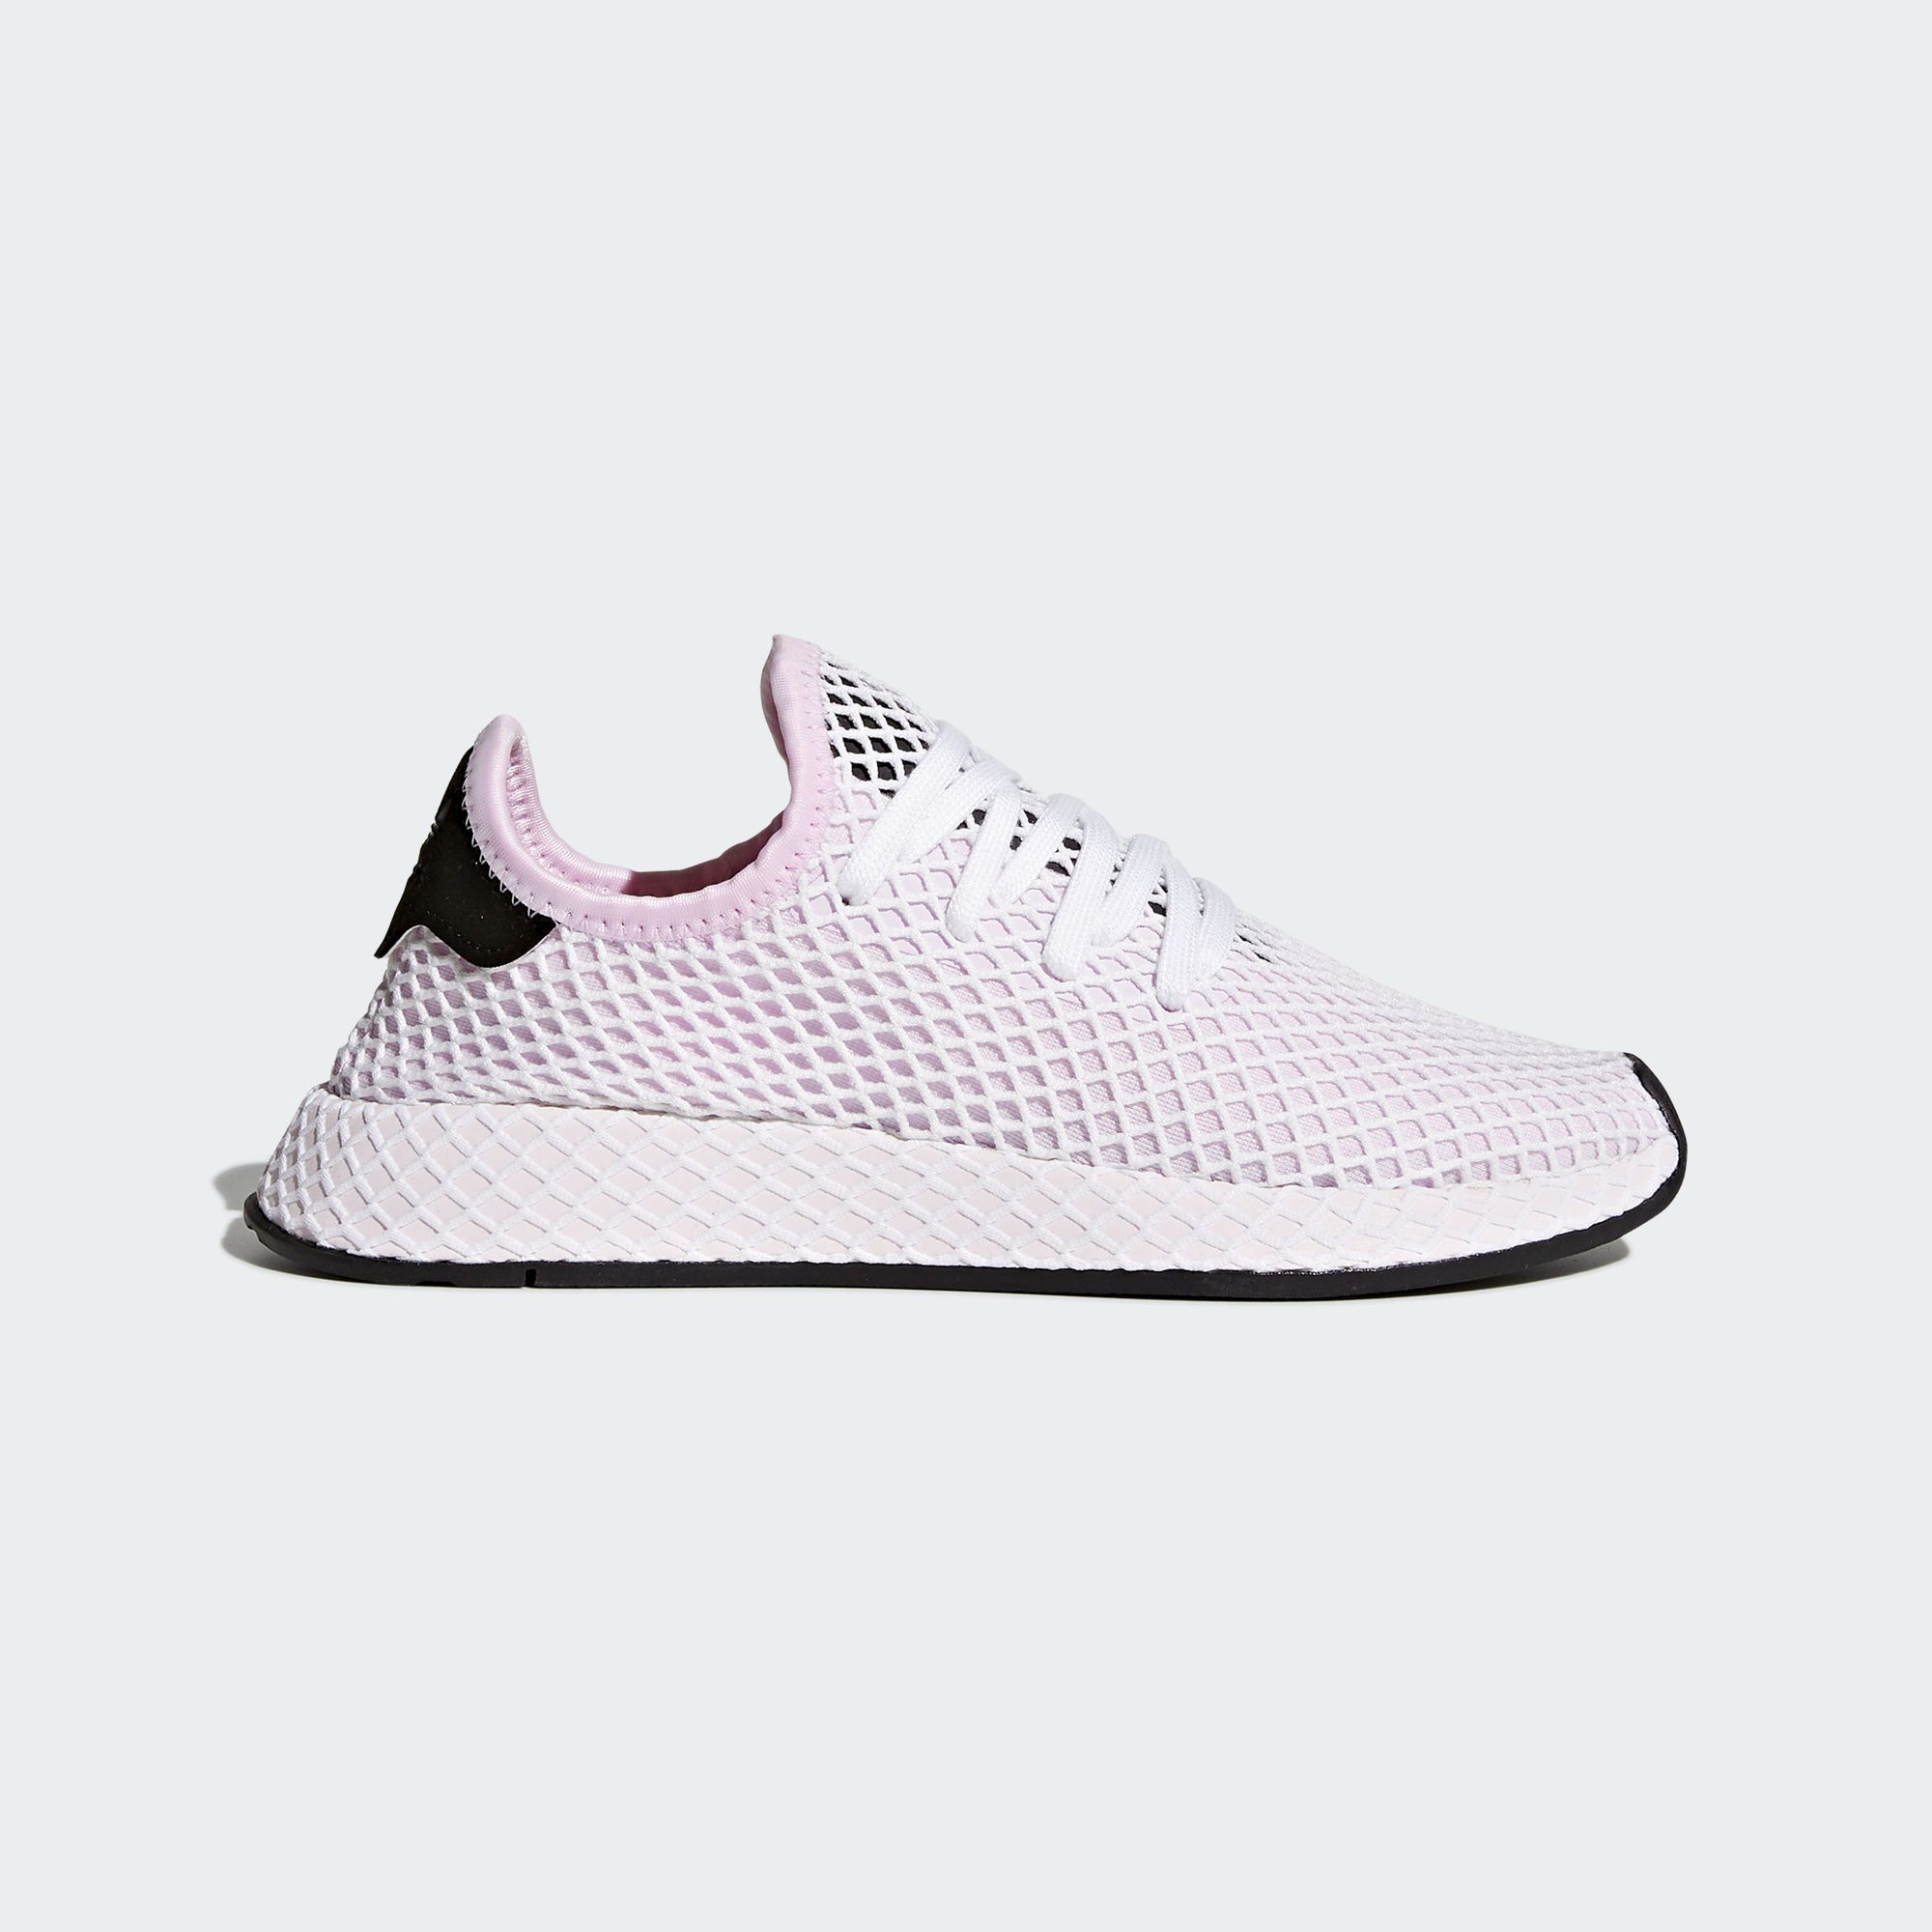 newest collection 40830 4690a Shop the Deerupt Runner Shoes - Pink at adidas.comus! See all the styles  and colors of Deerupt Runner Shoes - Pink at the official adidas online  shop.